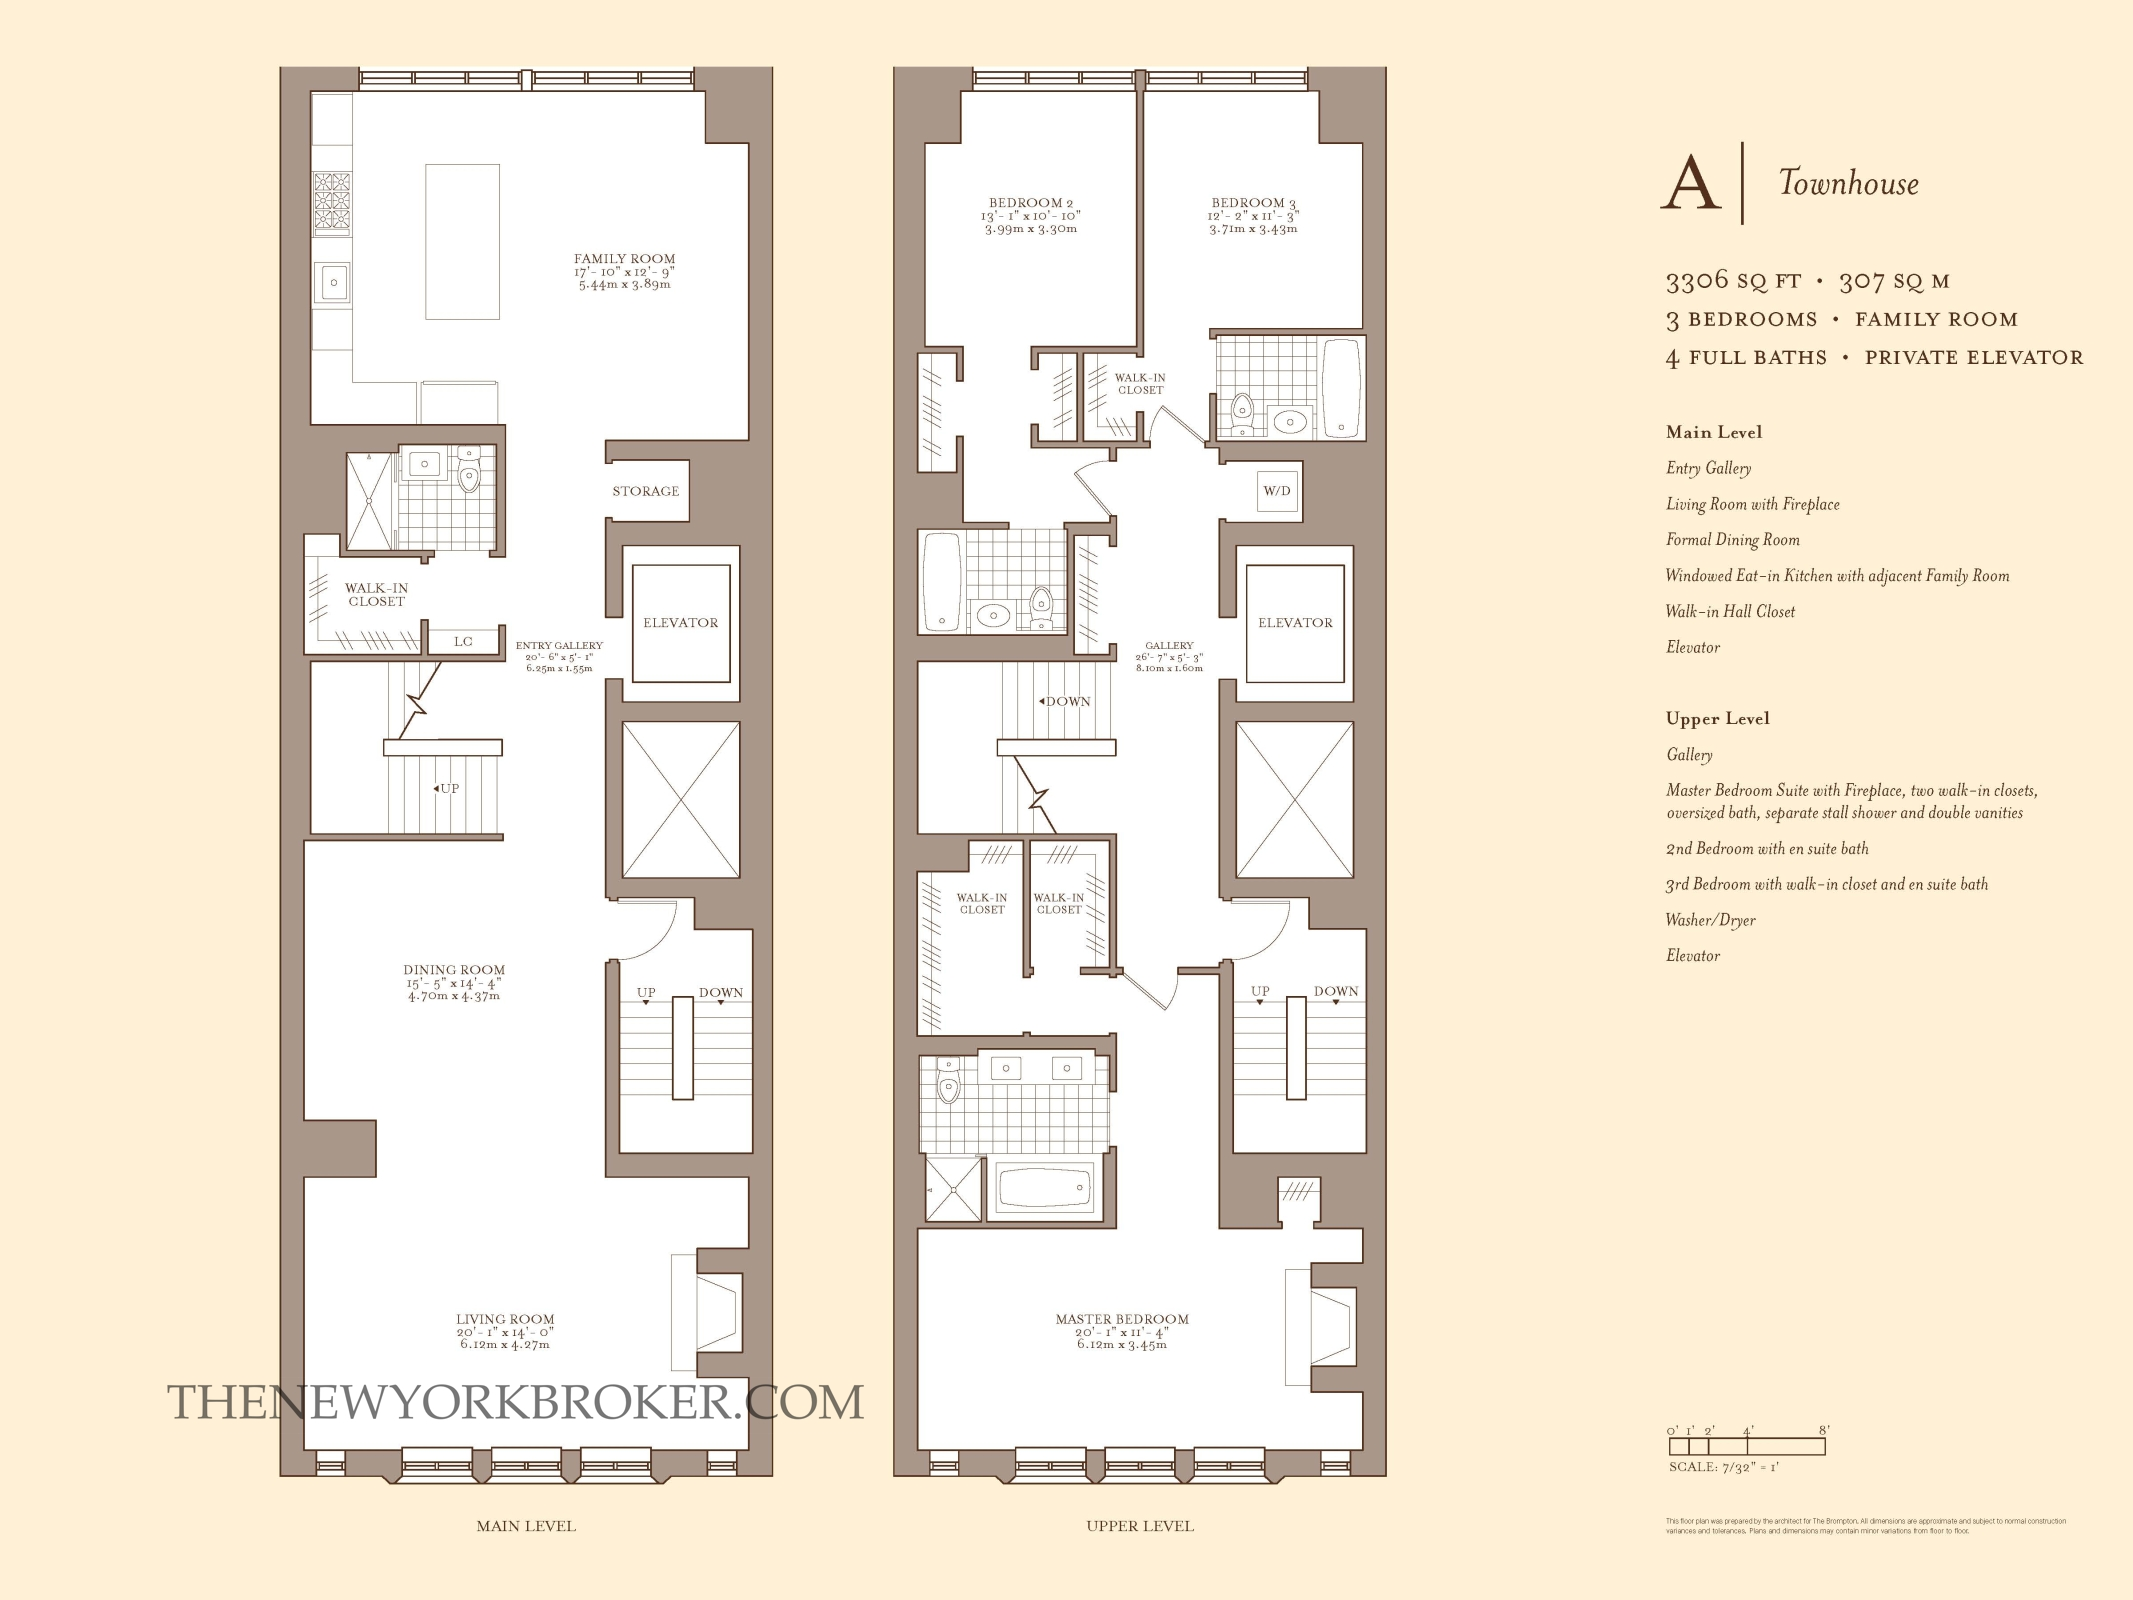 Townhouse Floor Plan With Elevator